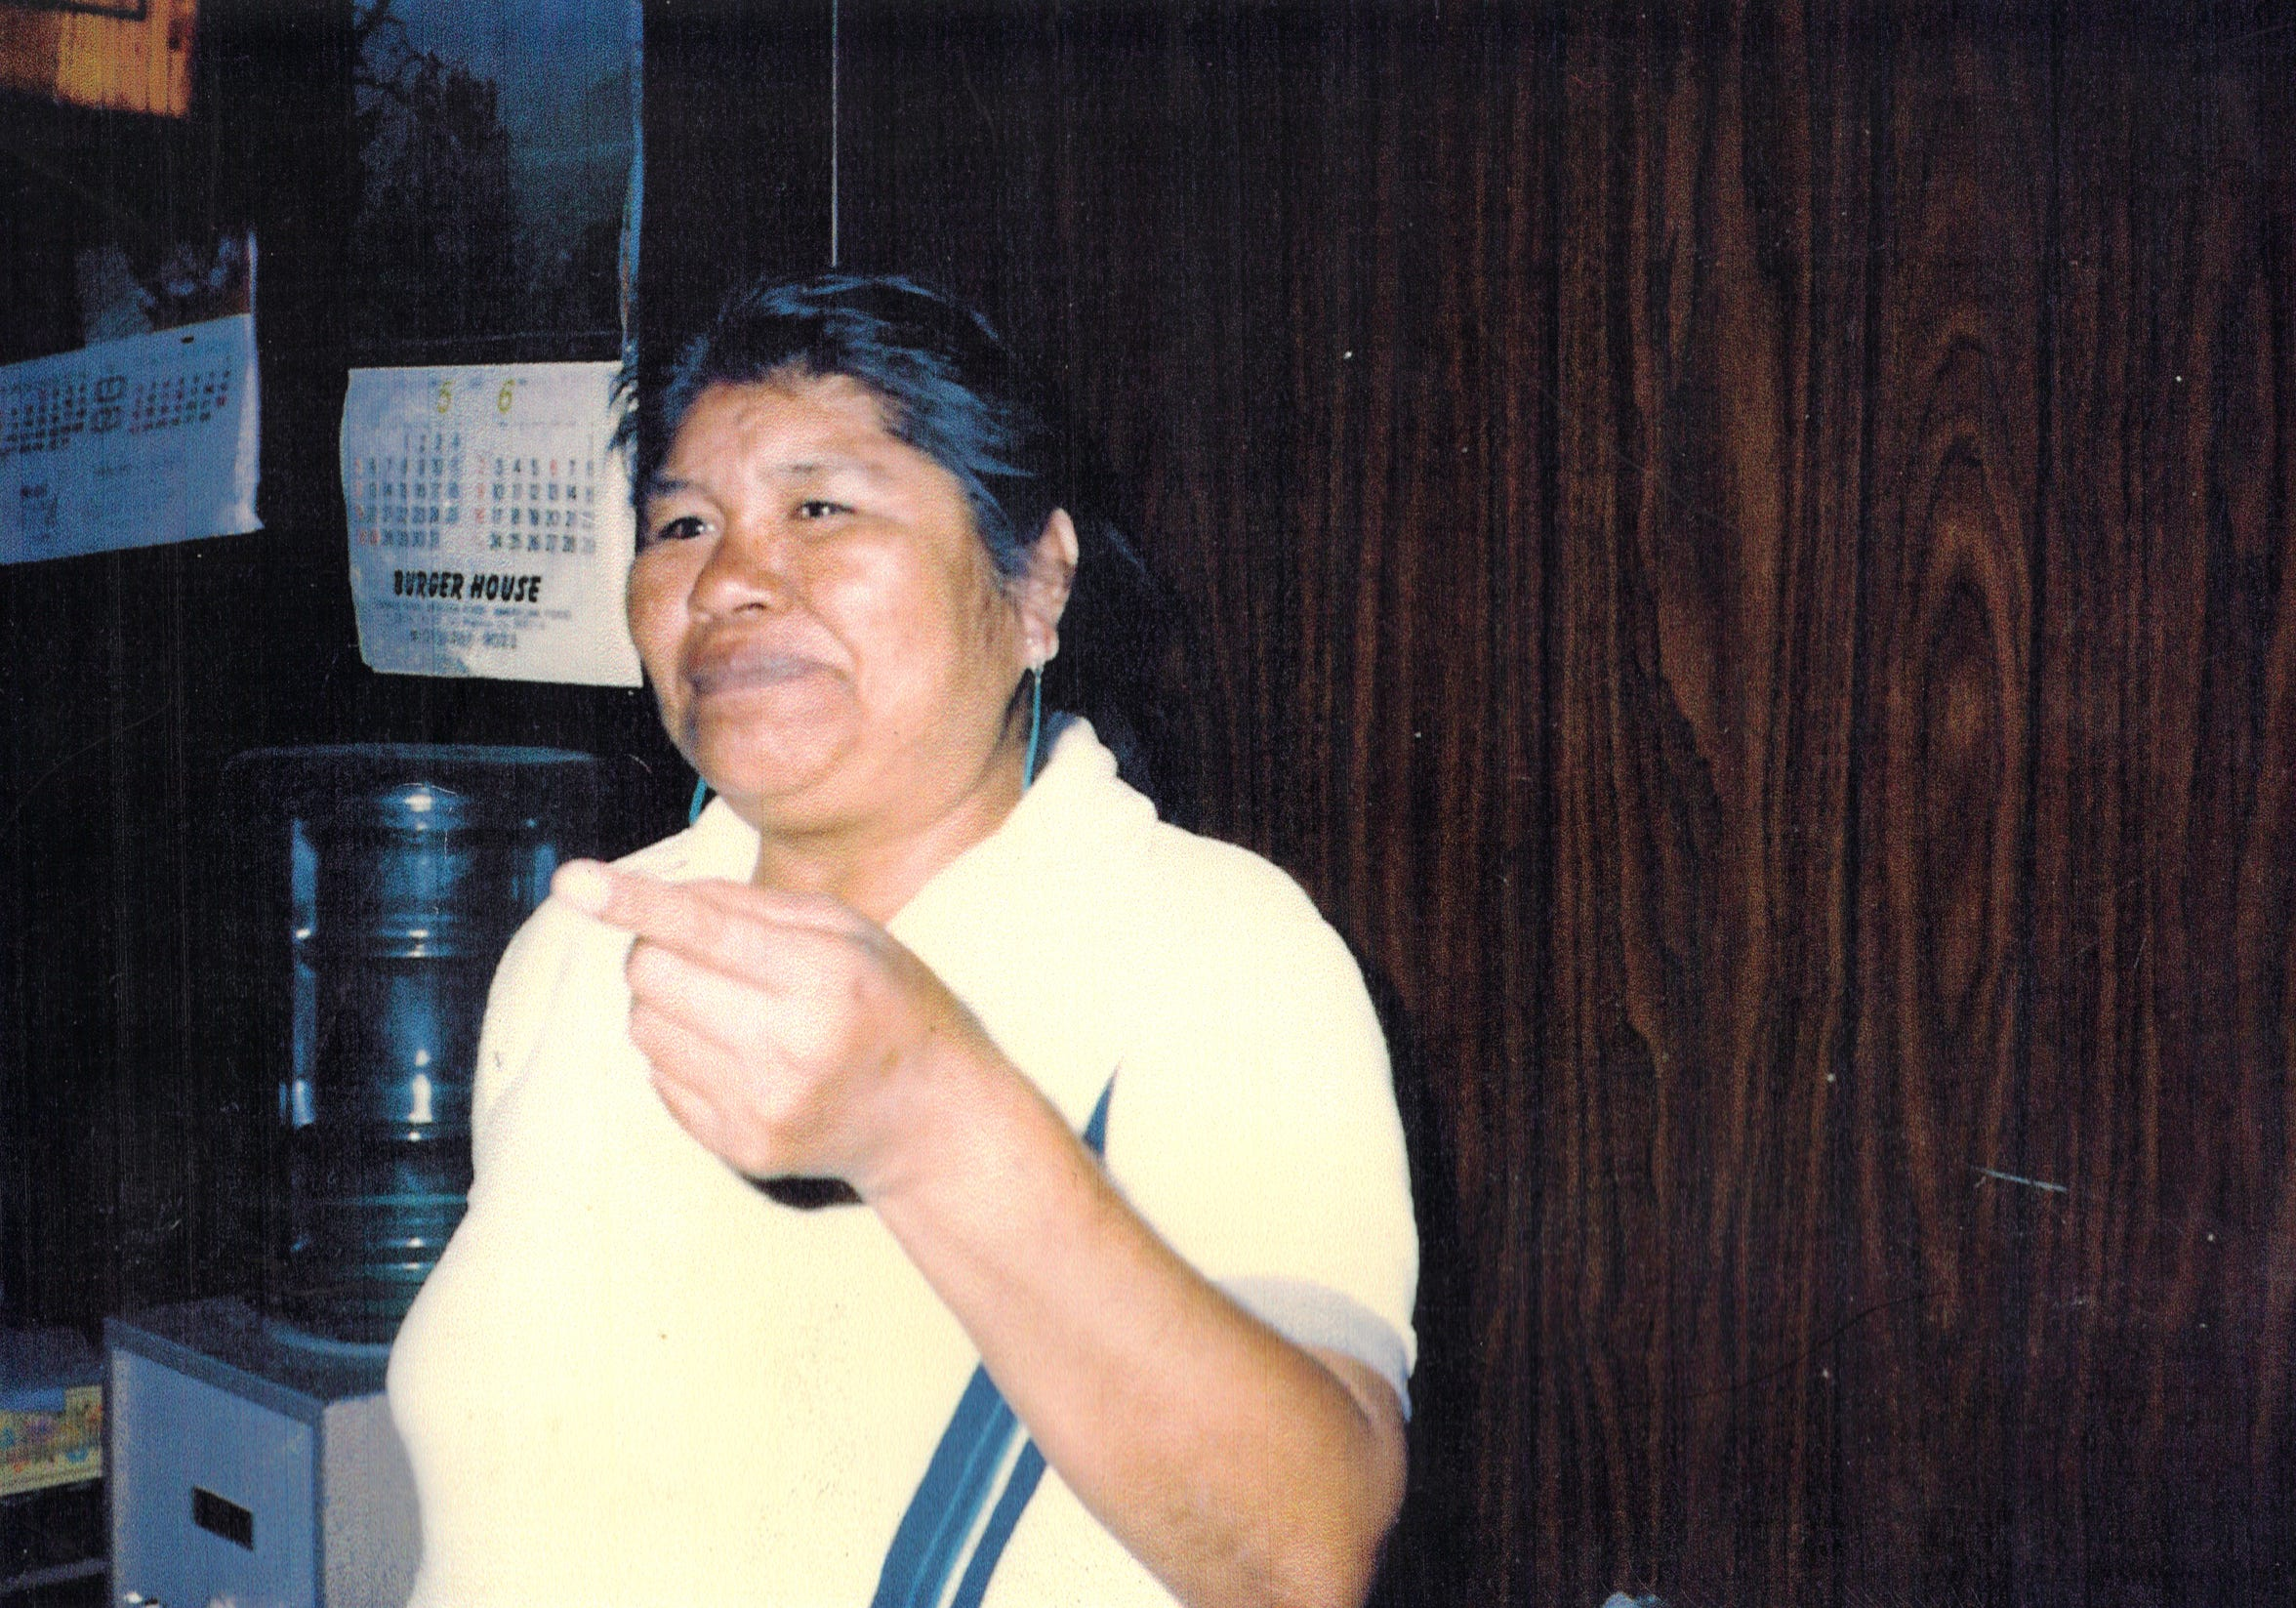 Roberta Augustine, shown here in an undated photo, died in 1987 and was the last enrolled member of the tribe before her children, Mary Ann, Herbert and Gregory Martin, enrolled in the tribe in 1988.